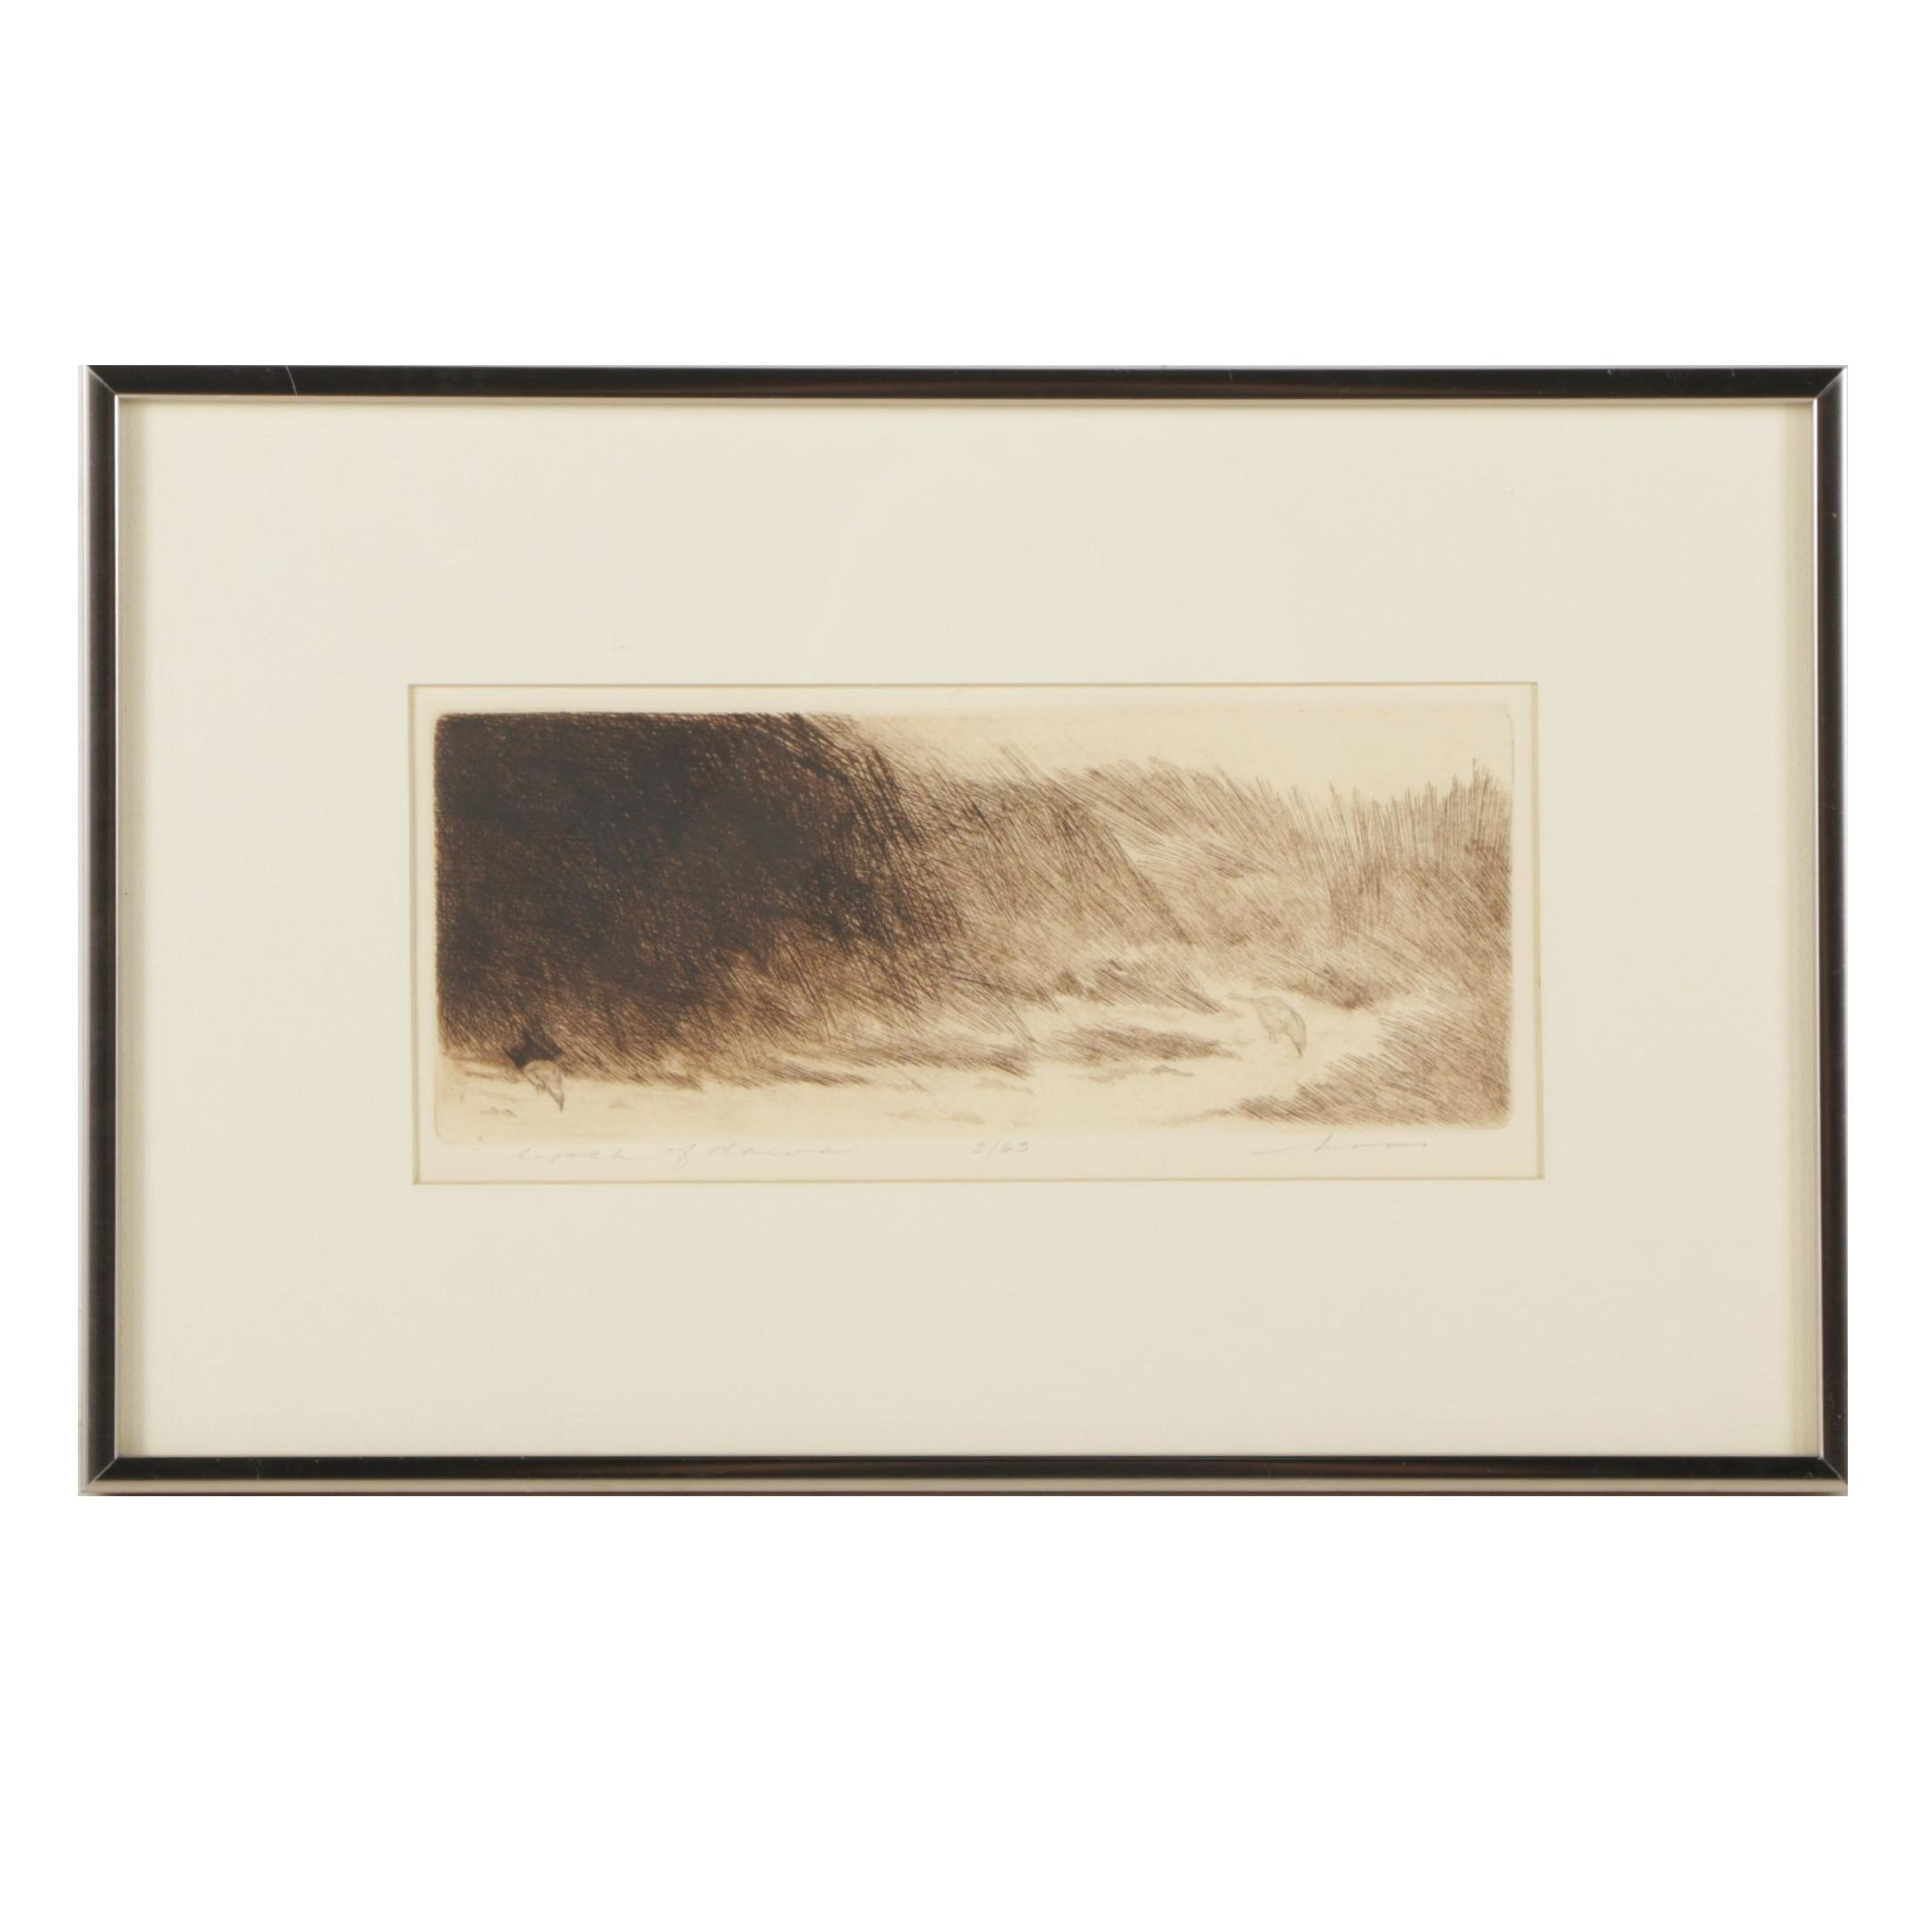 Limited Edition Etching of Grassy Landscape